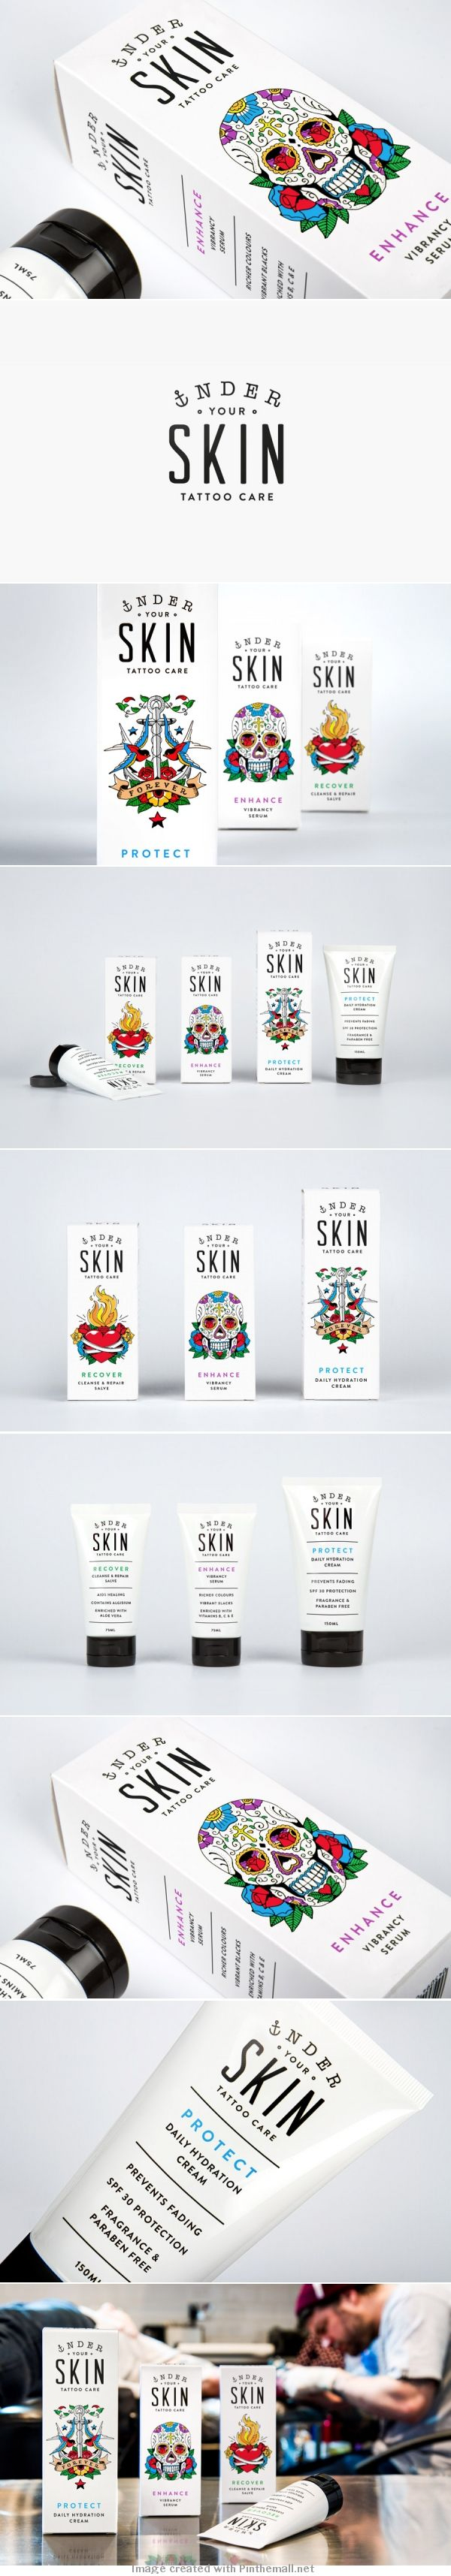 New Packaging for Under Your Skin by Robot Food - love the Concept of having a tattoo design on the box.